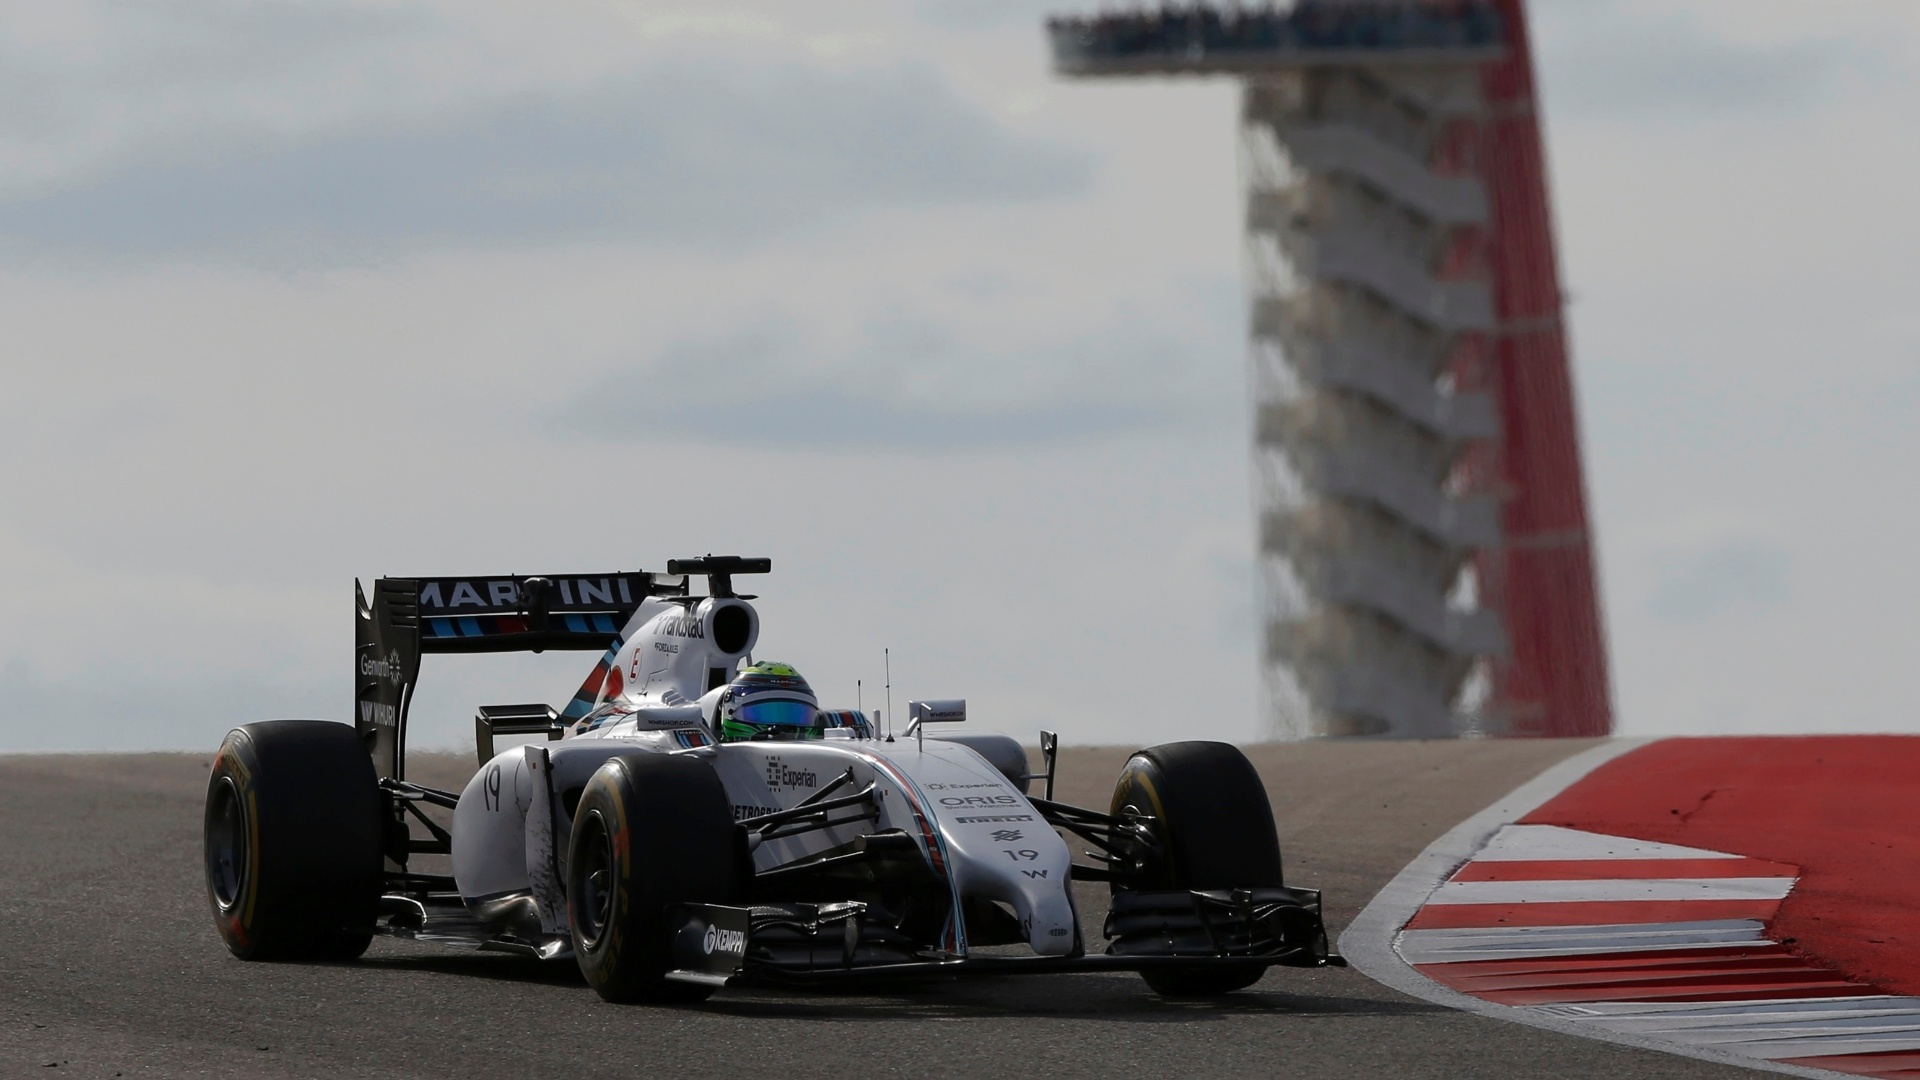 Felipe Massa, da Williams, guia com a torre do circuito de Austin ao fundo, no GP dos EUA